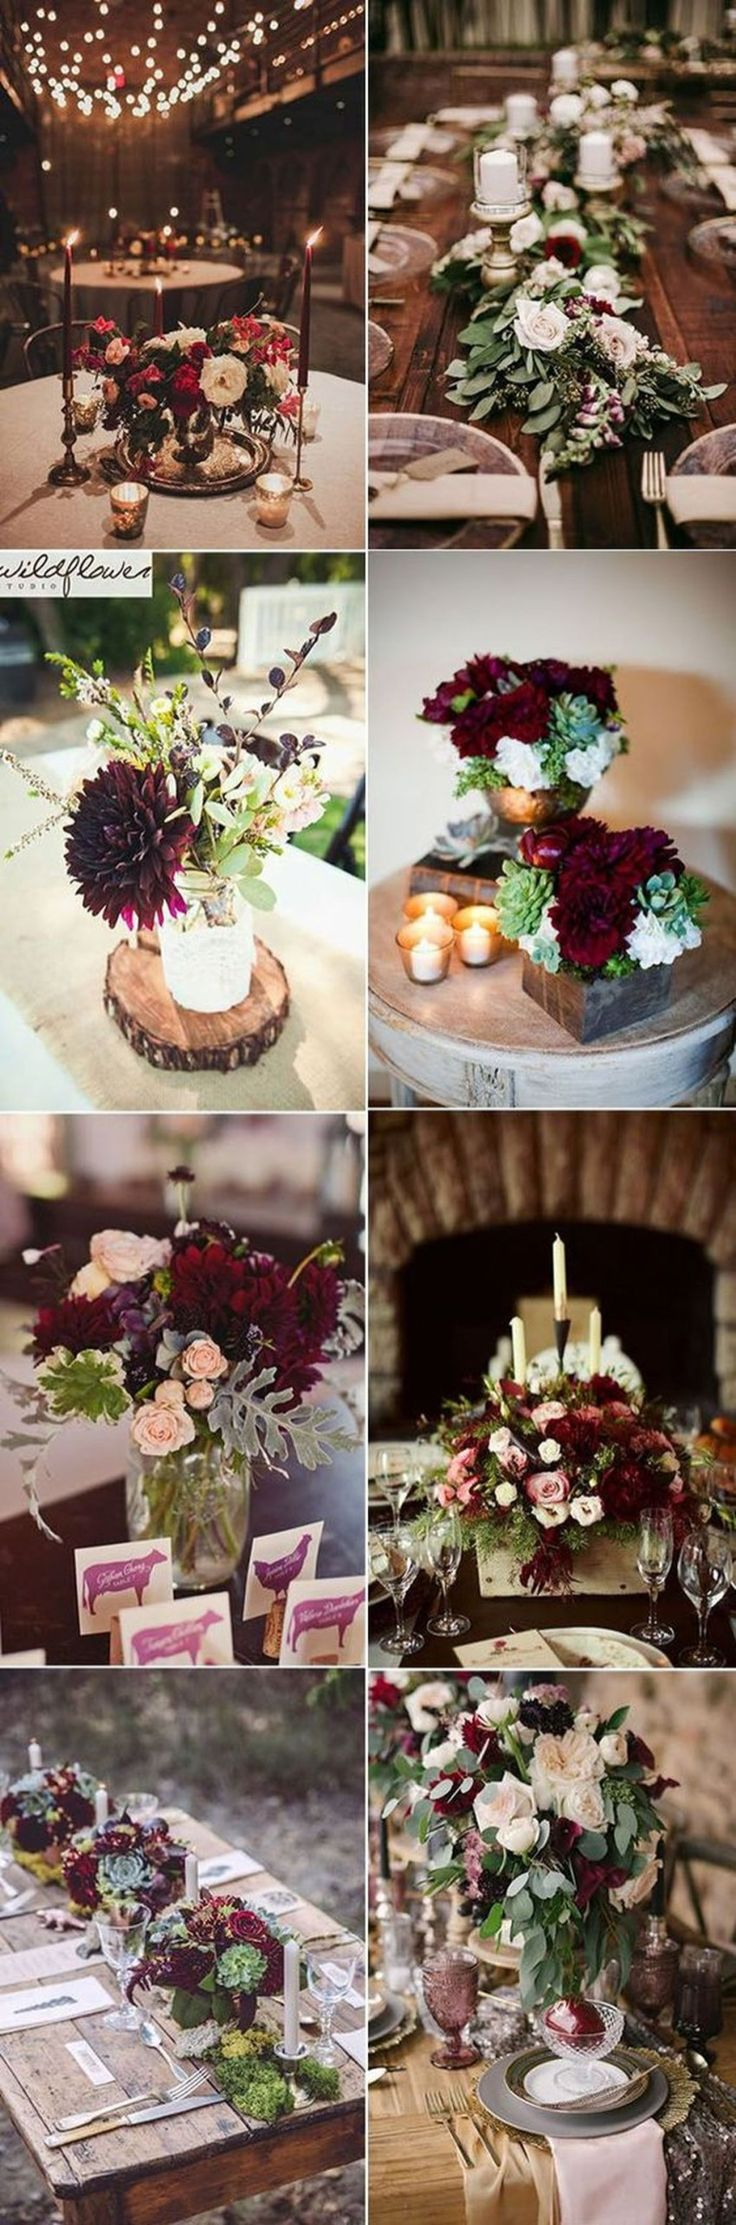 Fall wedding decoration ideas reception   best Wedding images on Pinterest  Wedding ideas Wedding frocks